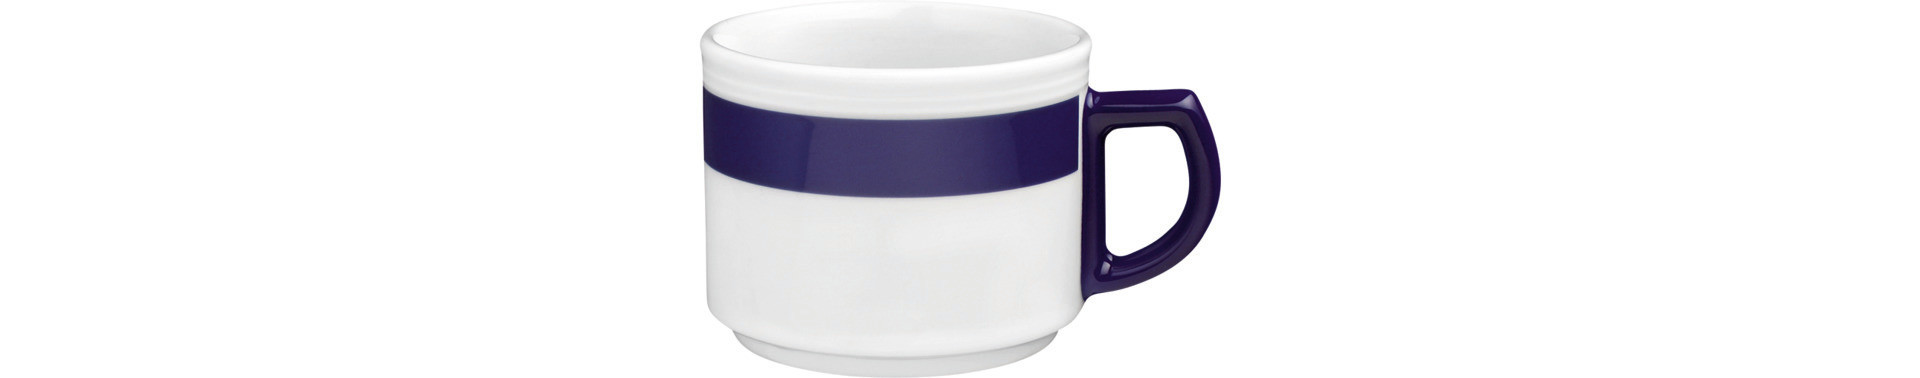 Vitalis, Tasse 80 x 77 mm / 0,18 l blaues Band